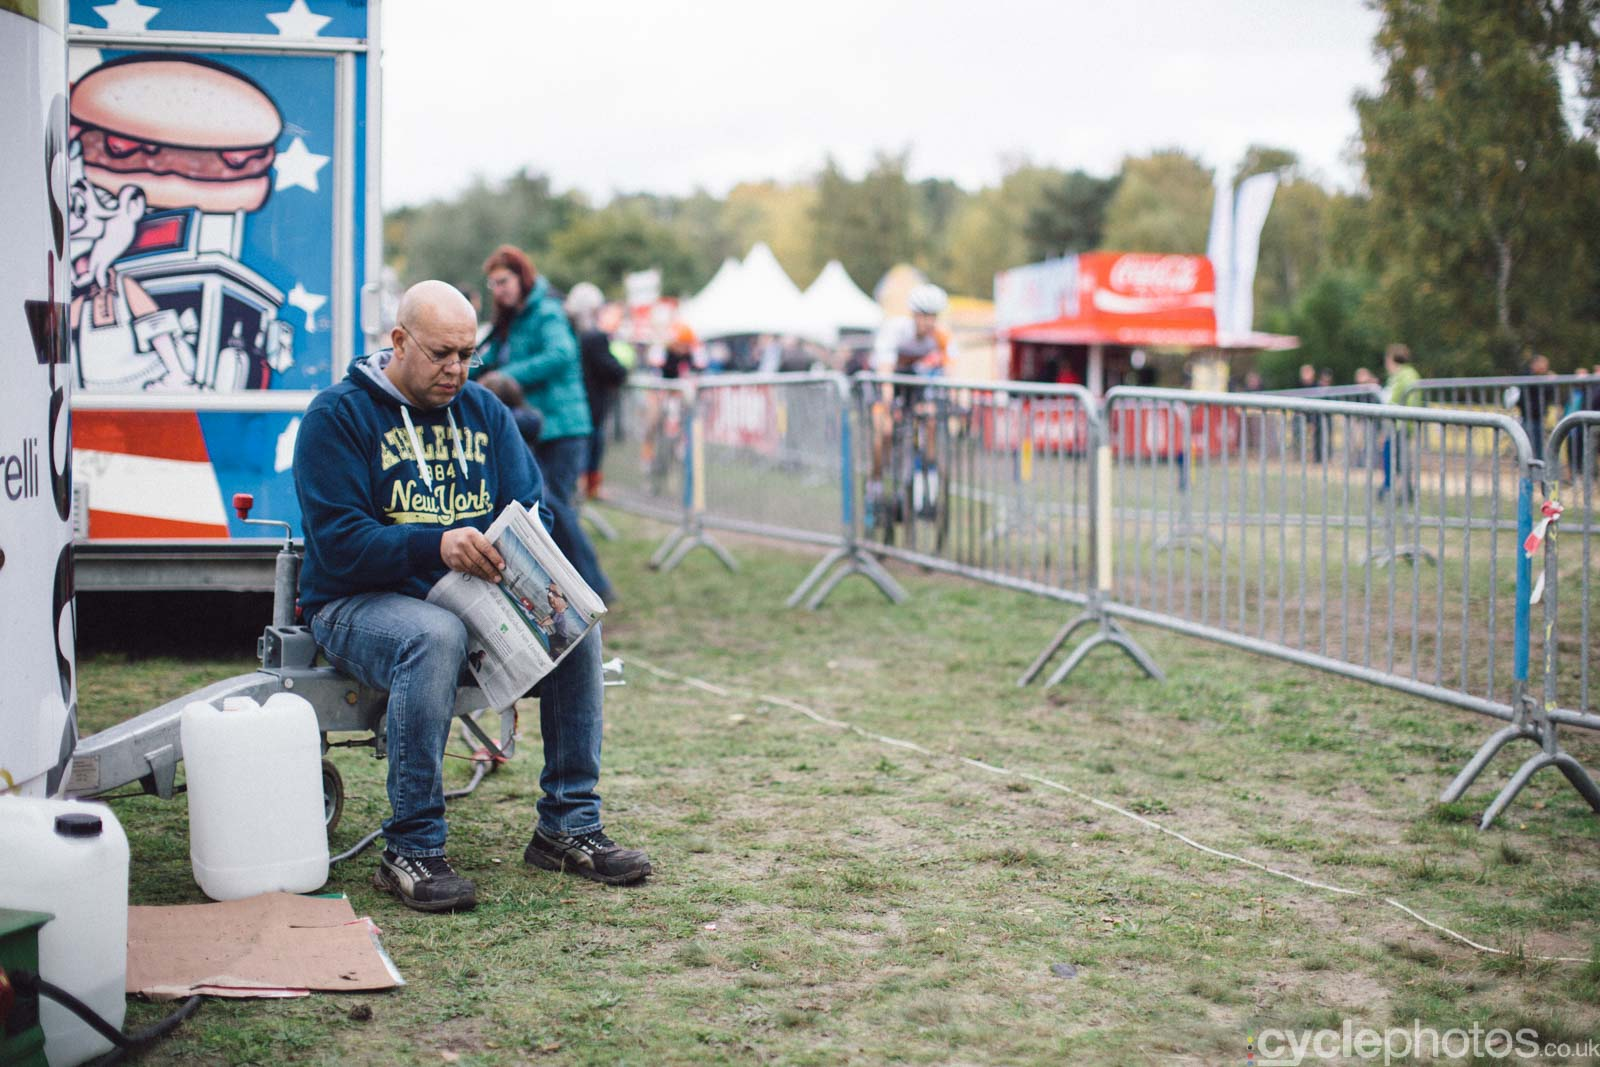 2015-cyclephotos-cyclocross-zonhoven-135921